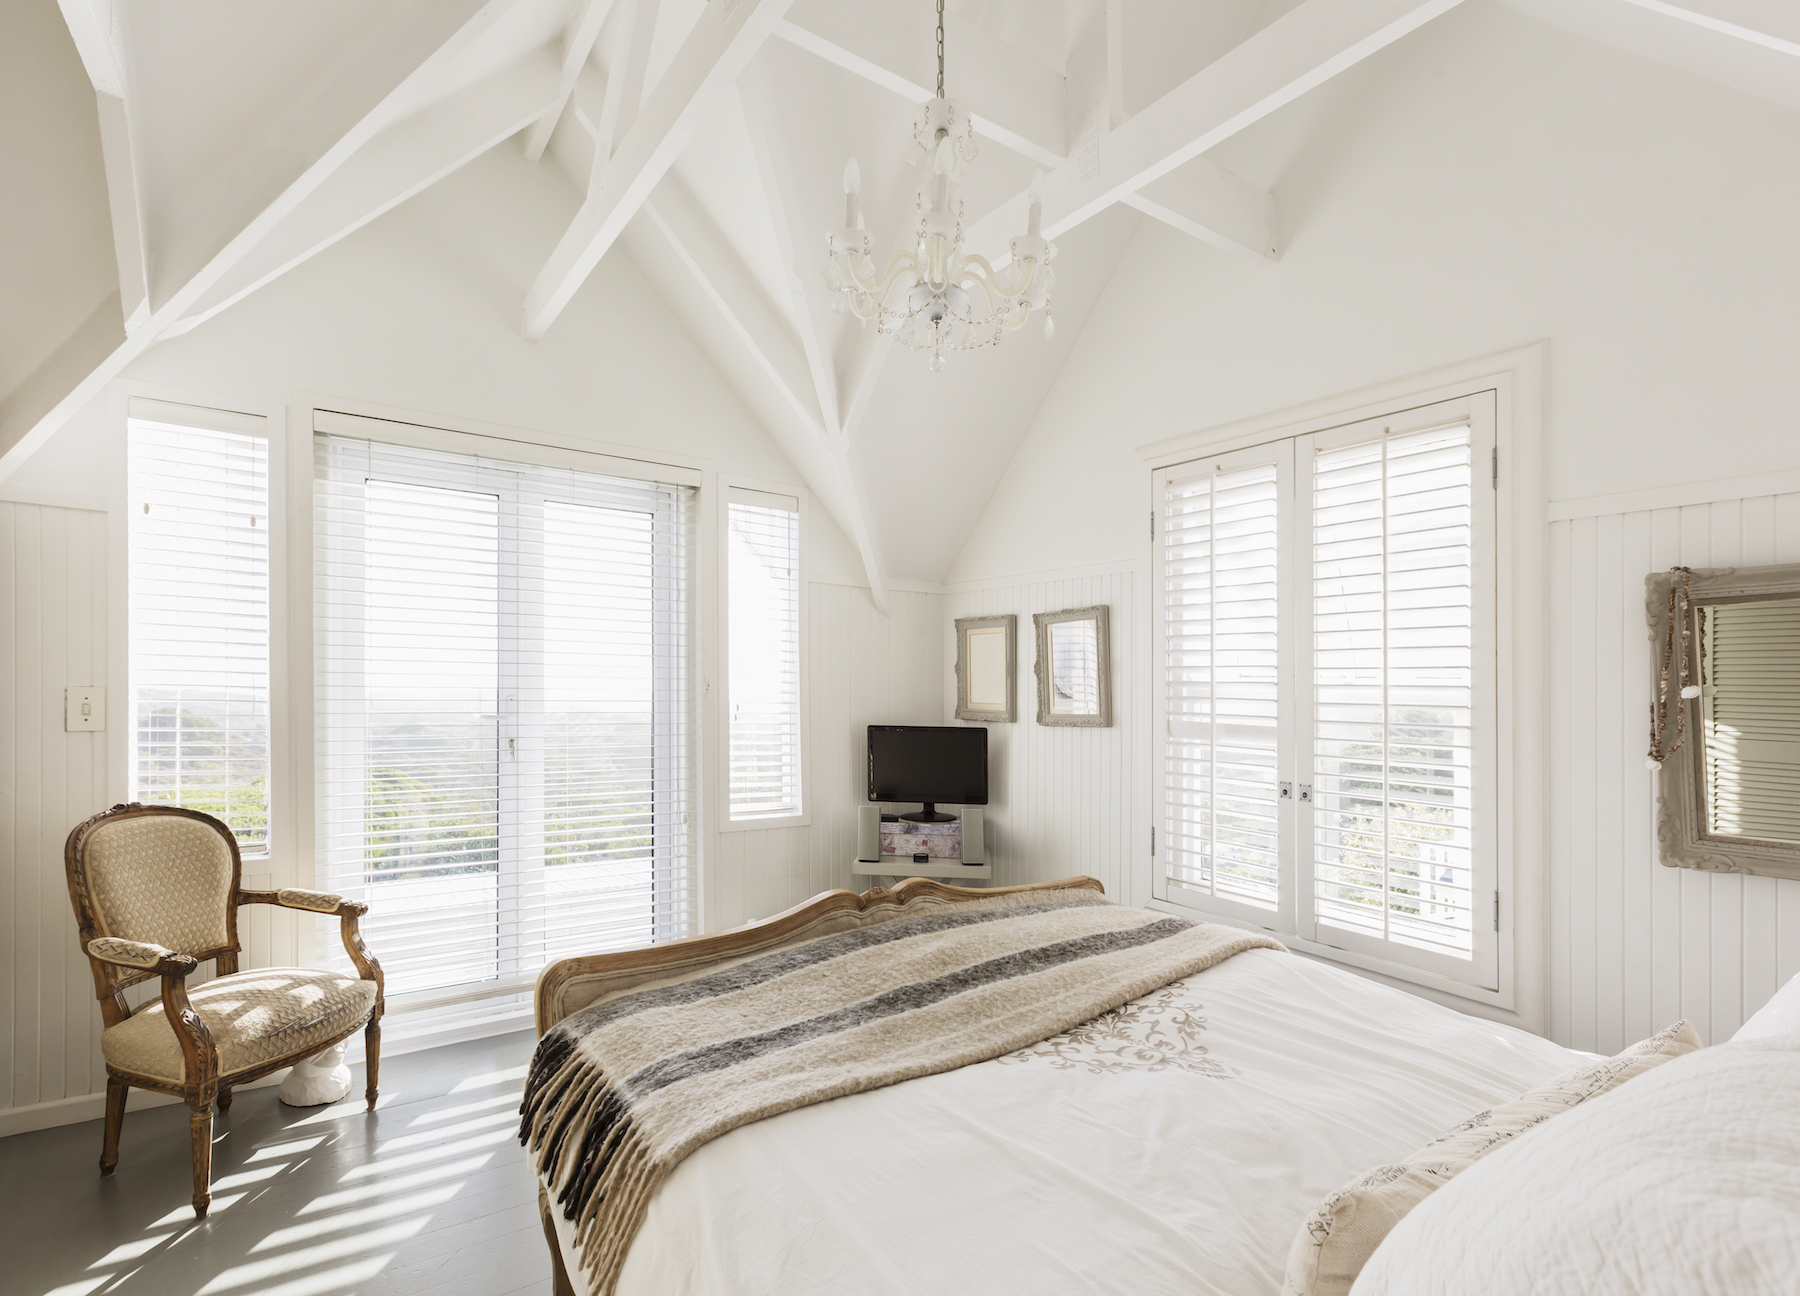 White Bedroom with Window Blinds